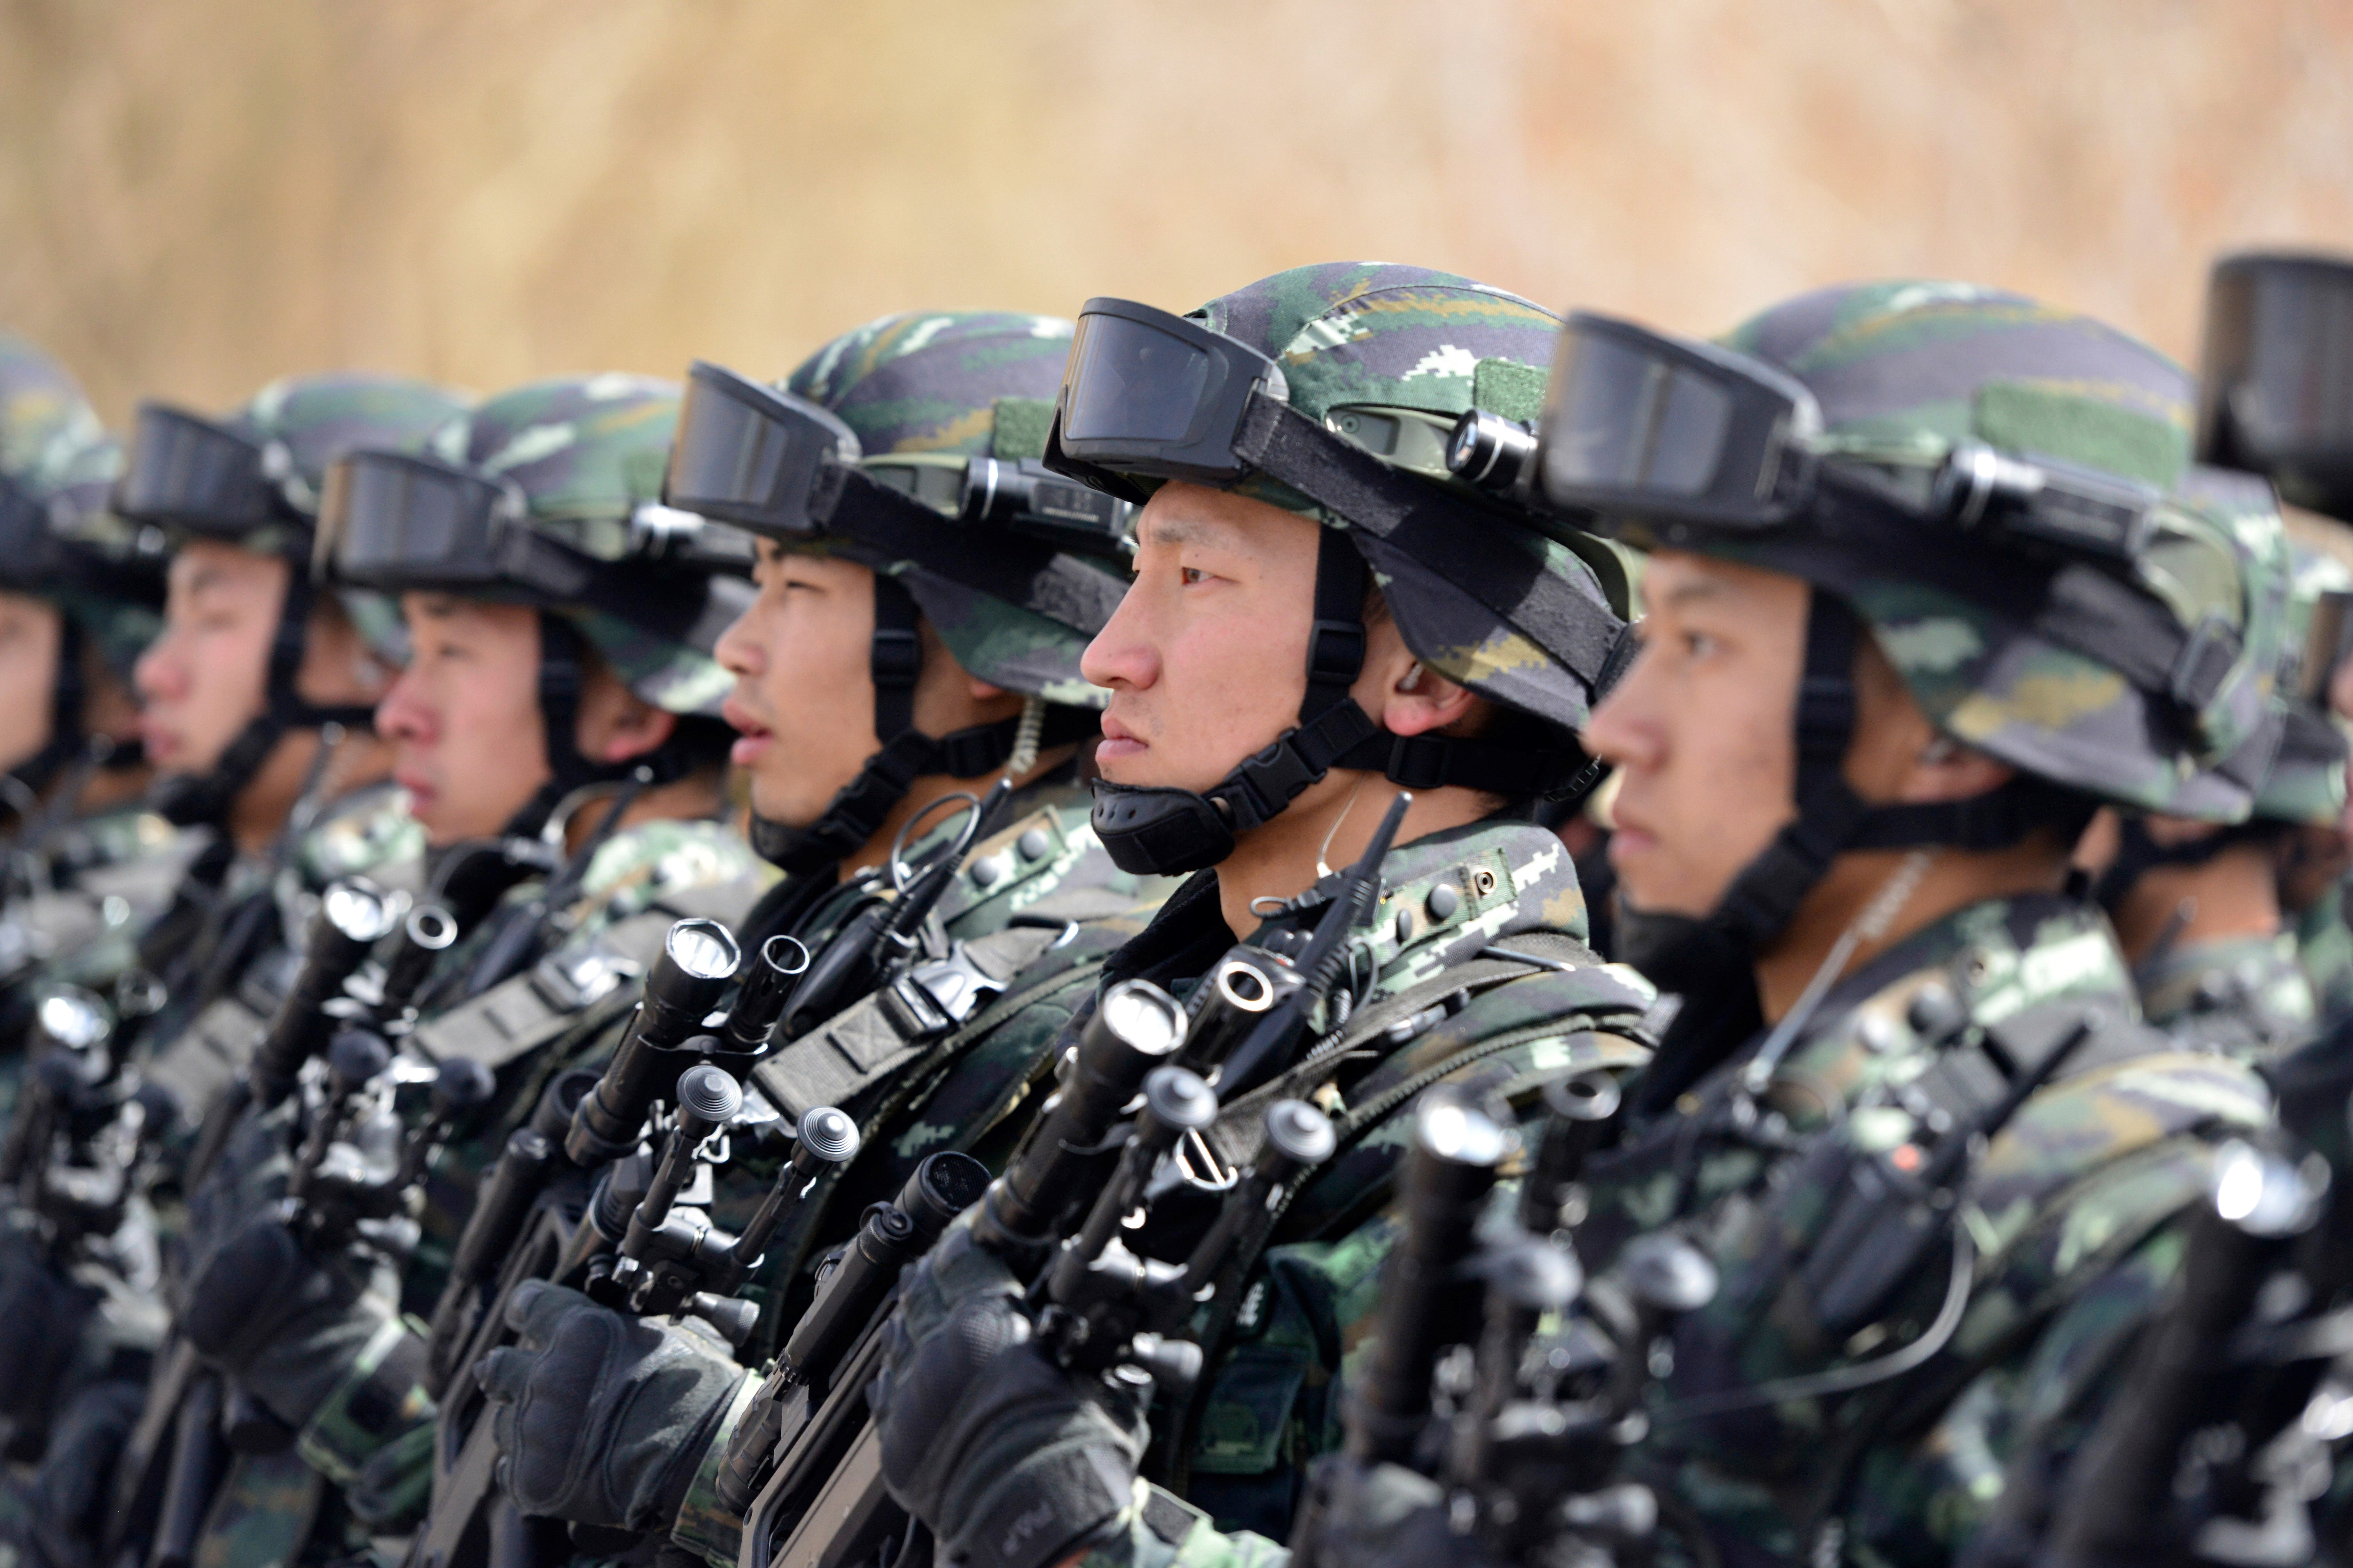 This photo taken on February 27, 2017 shows Chinese military police attending an anti-terrorist oath-taking rally in Hetian, northwest China's Xinjiang Uygur Autonomous Region.